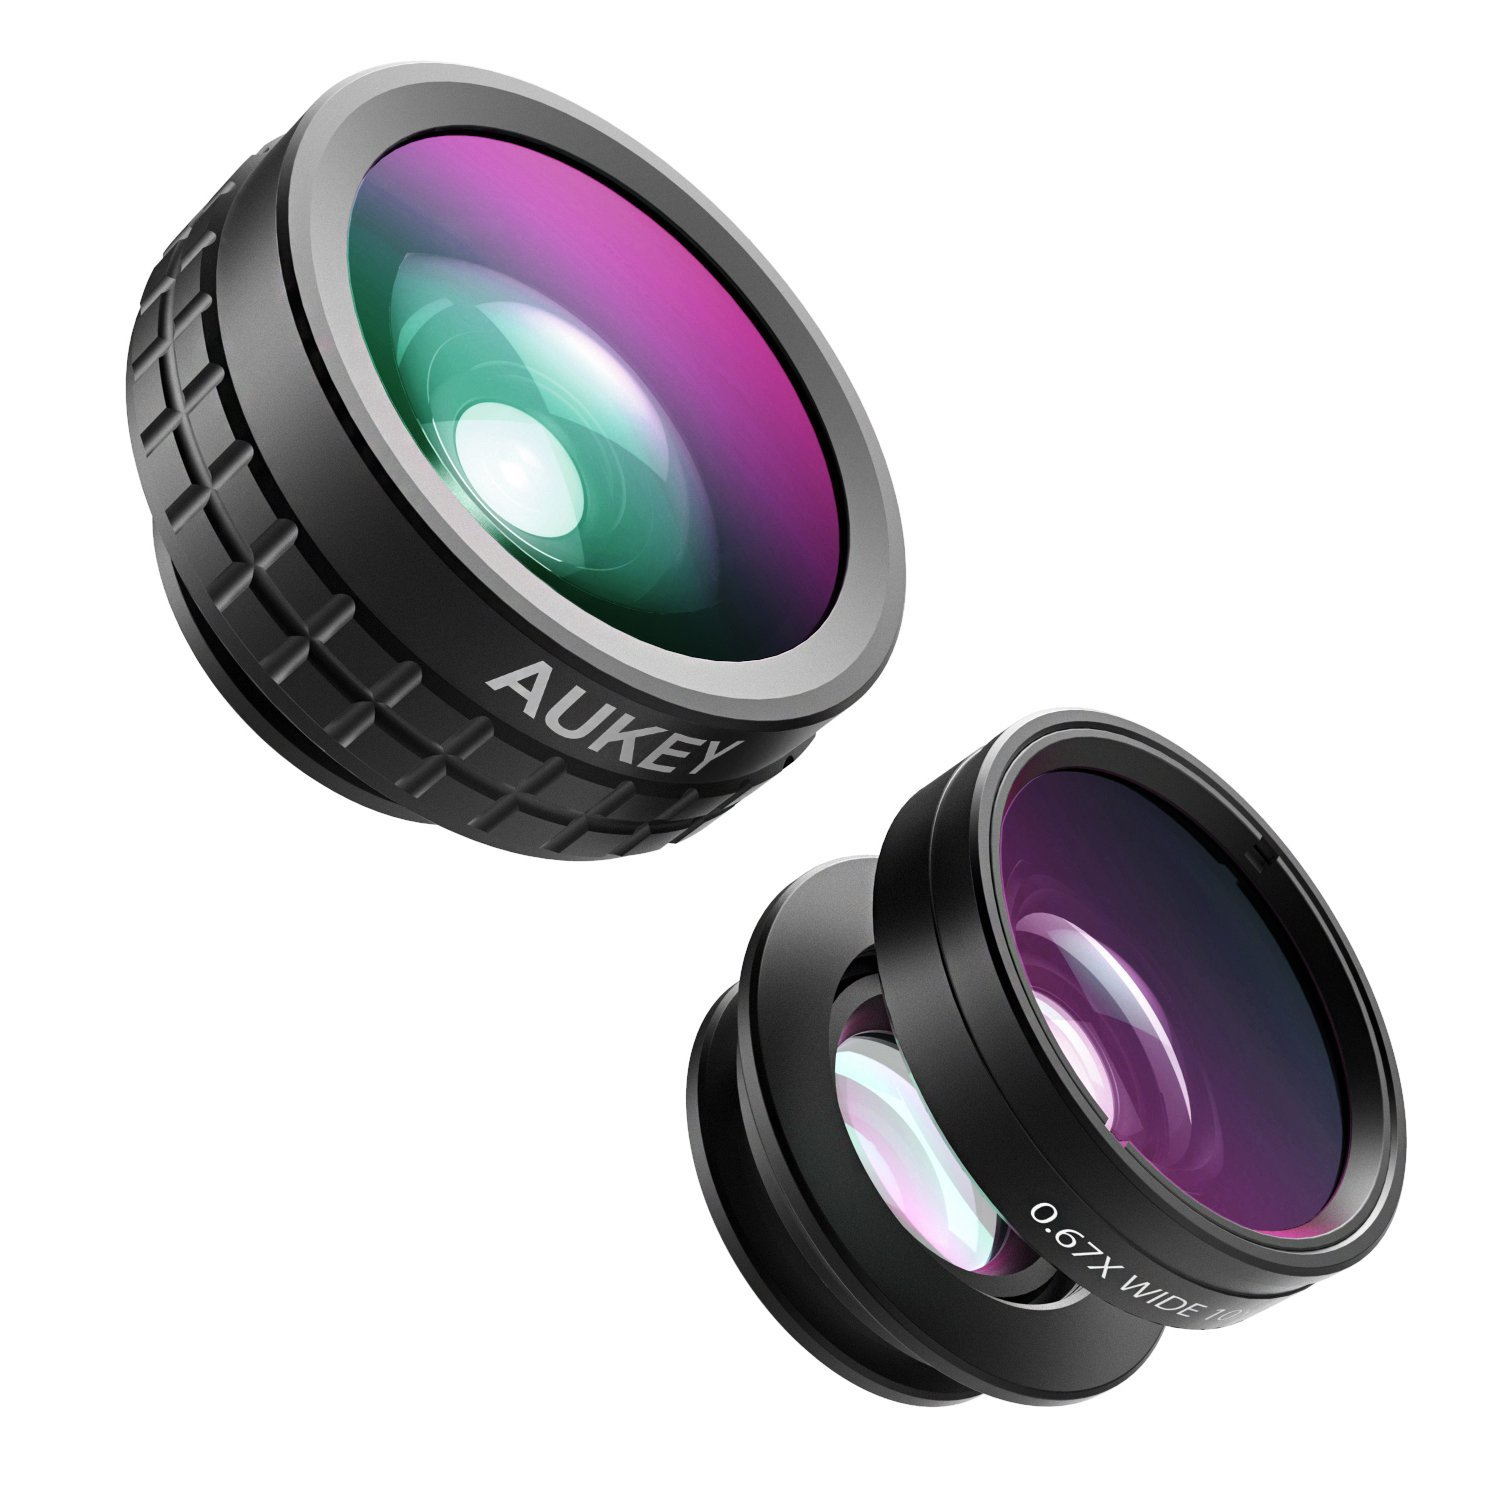 AUKEY 3 in 1 Smartphone Lens